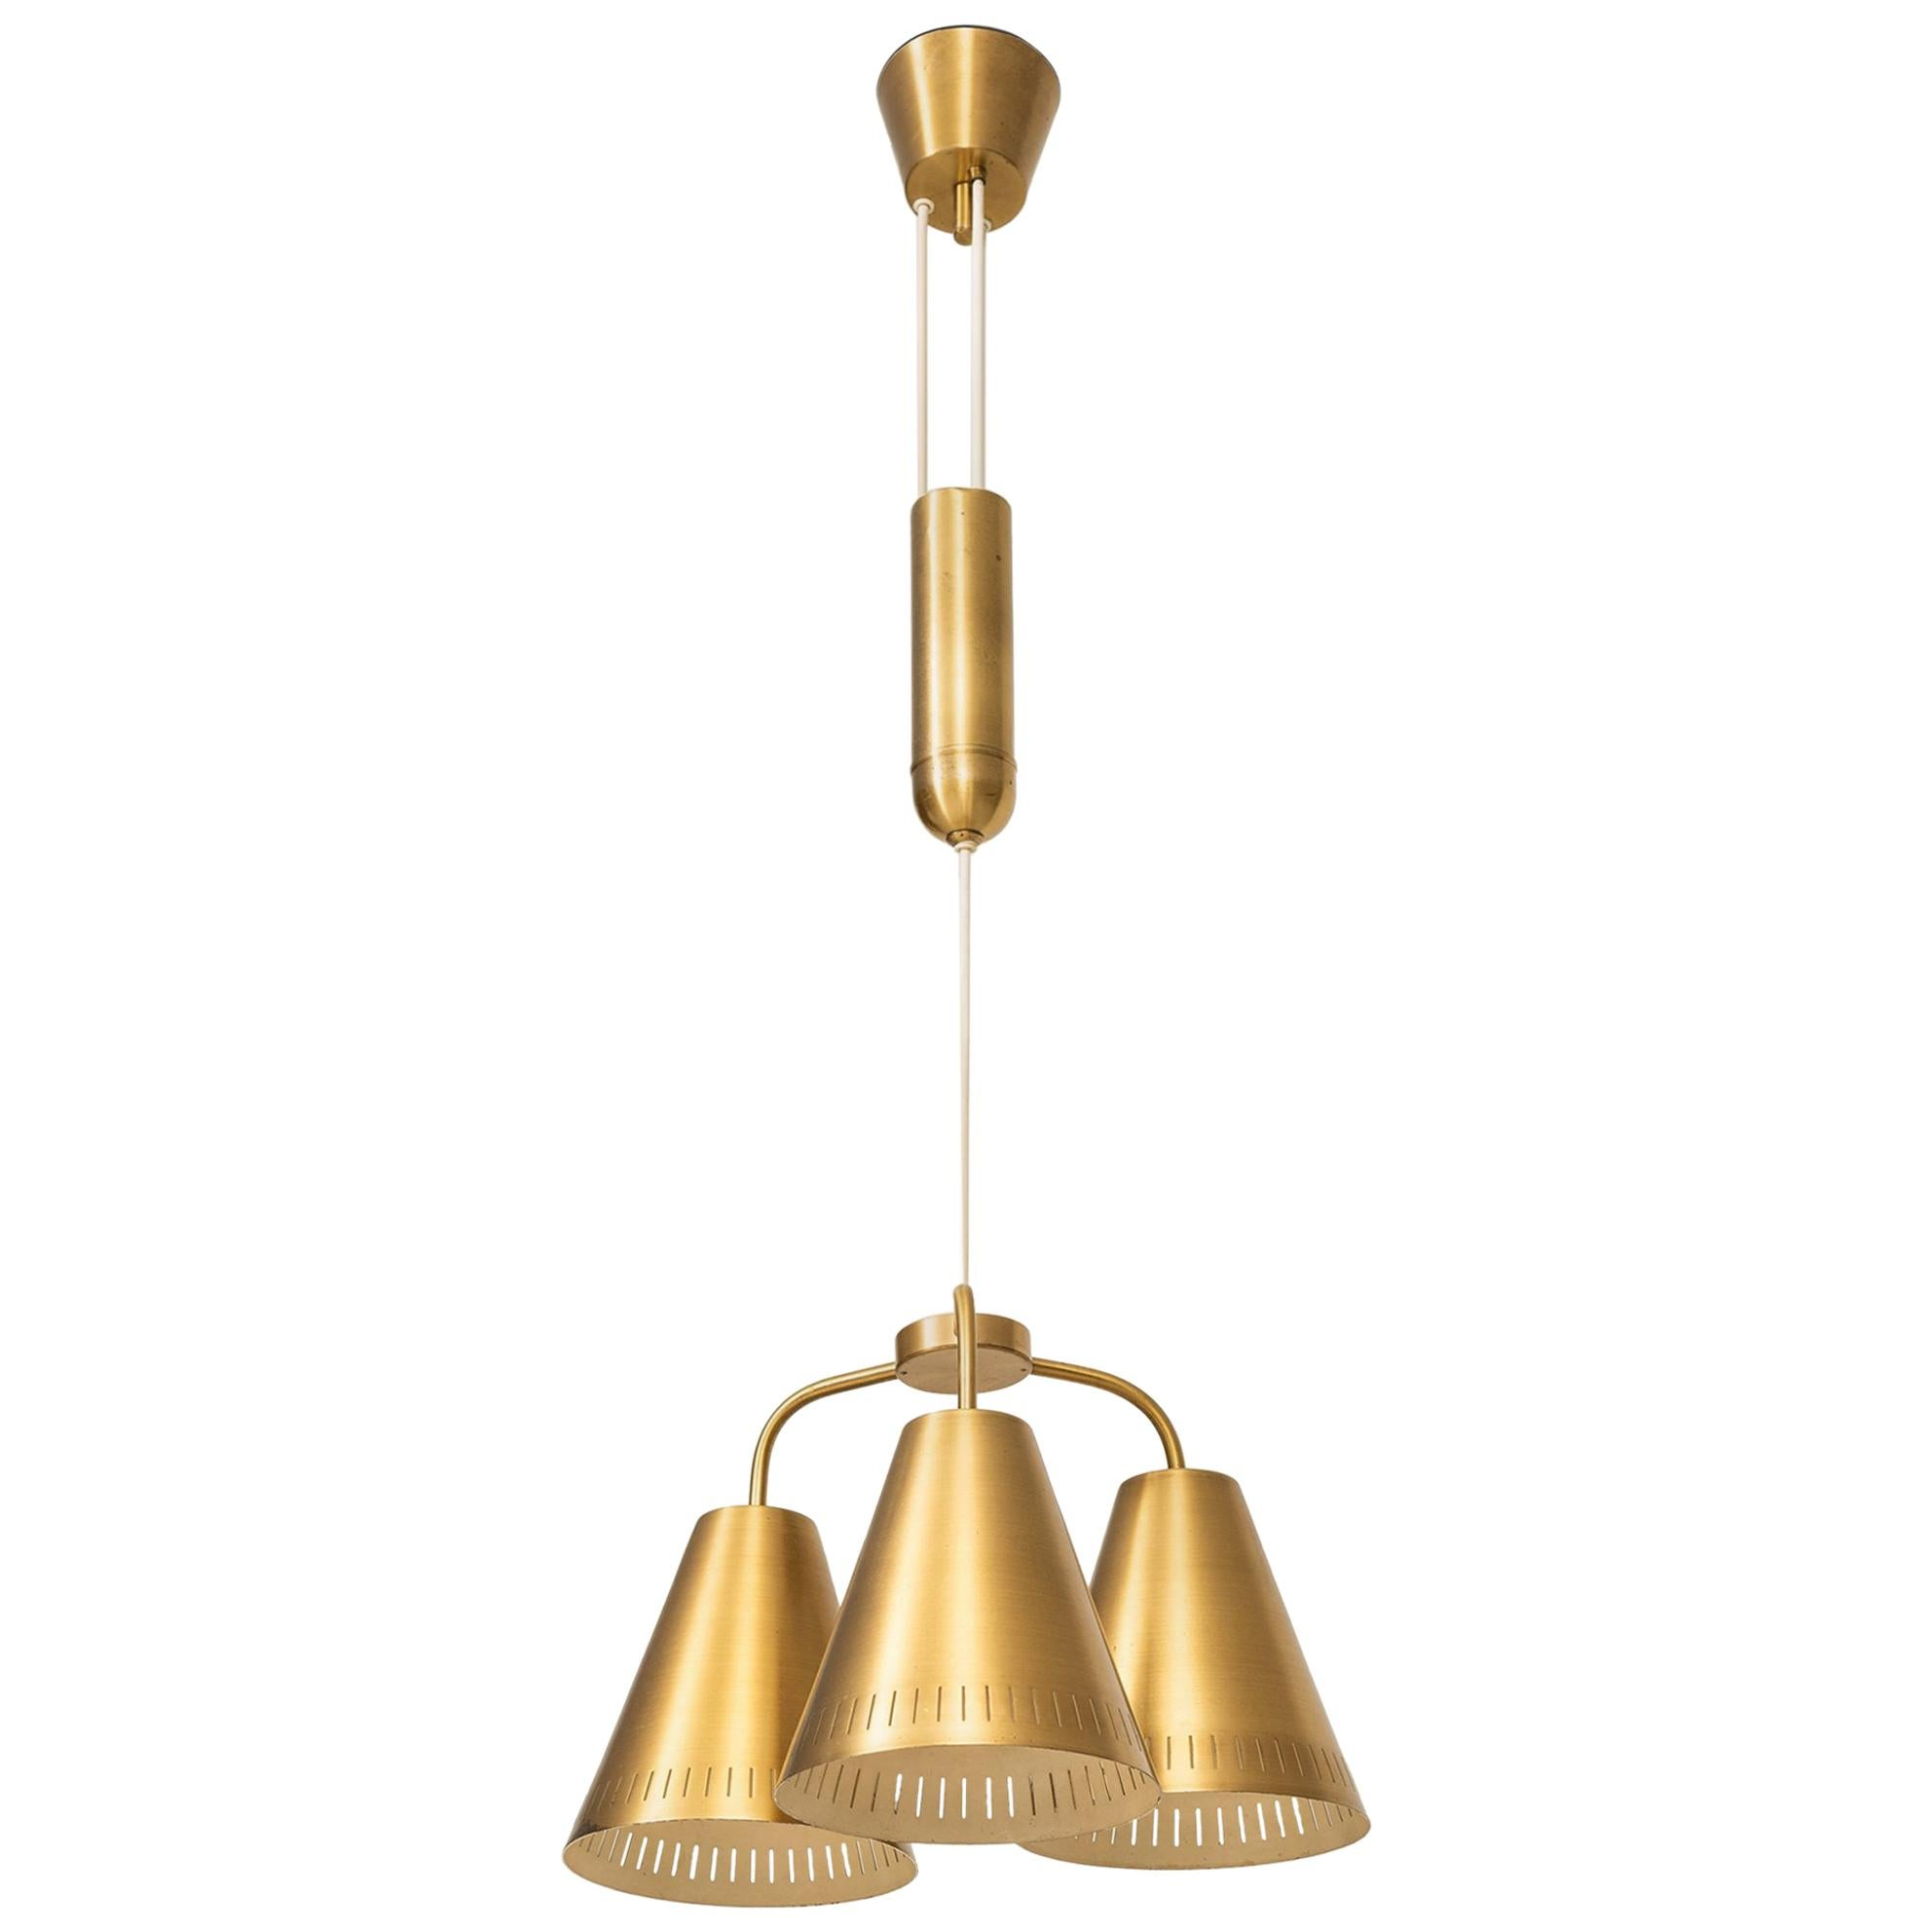 Harald Notini Ceiling Lamp Produced by Böhlmarks in Sweden